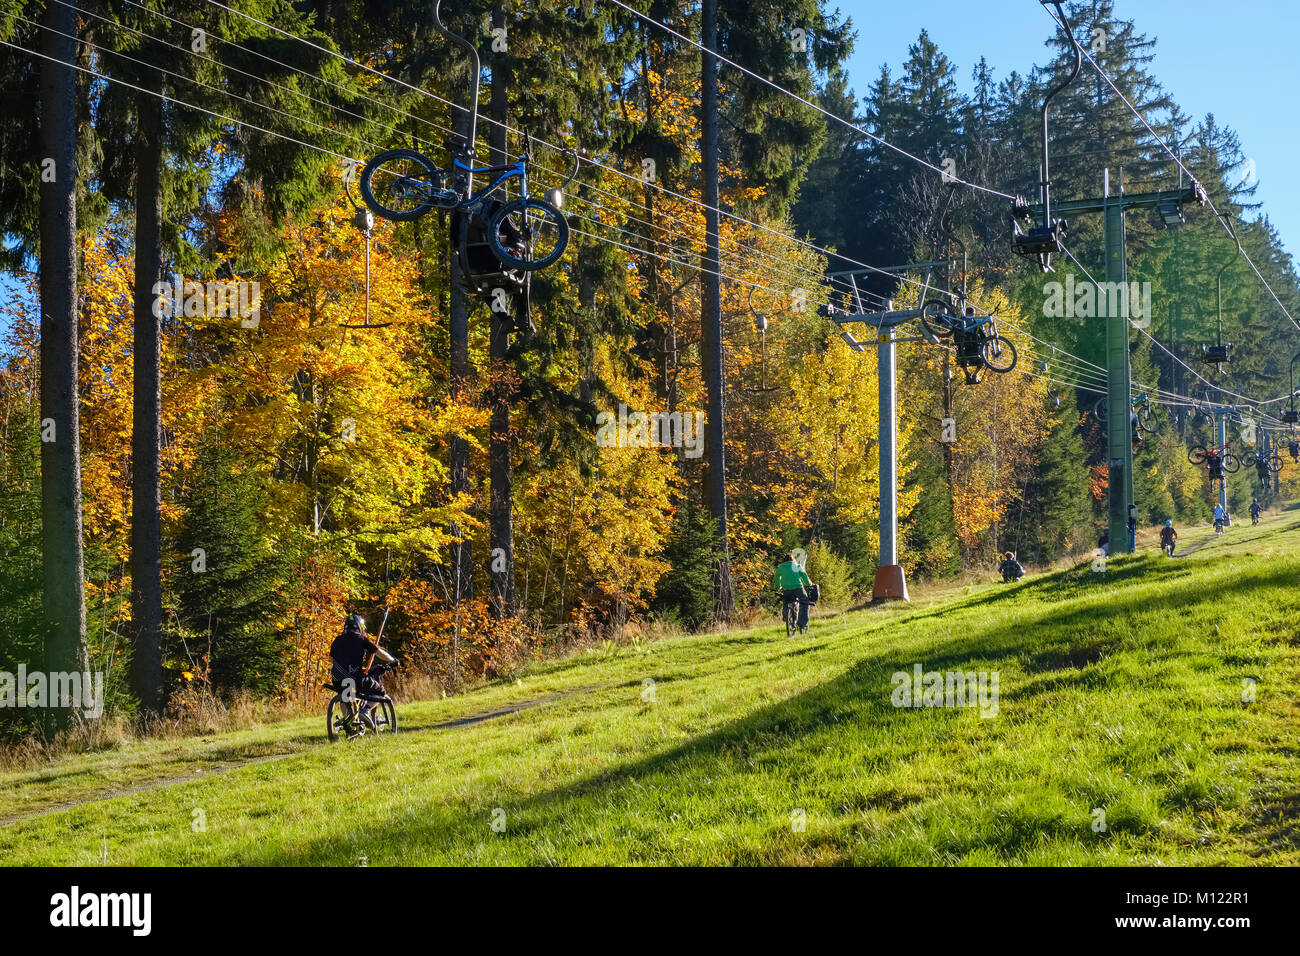 Lift with mountain bikers at the Geisskopf,near Bodenmais,Bavarian Forest,Lower Bavaria,Bavaria,Germany - Stock Image